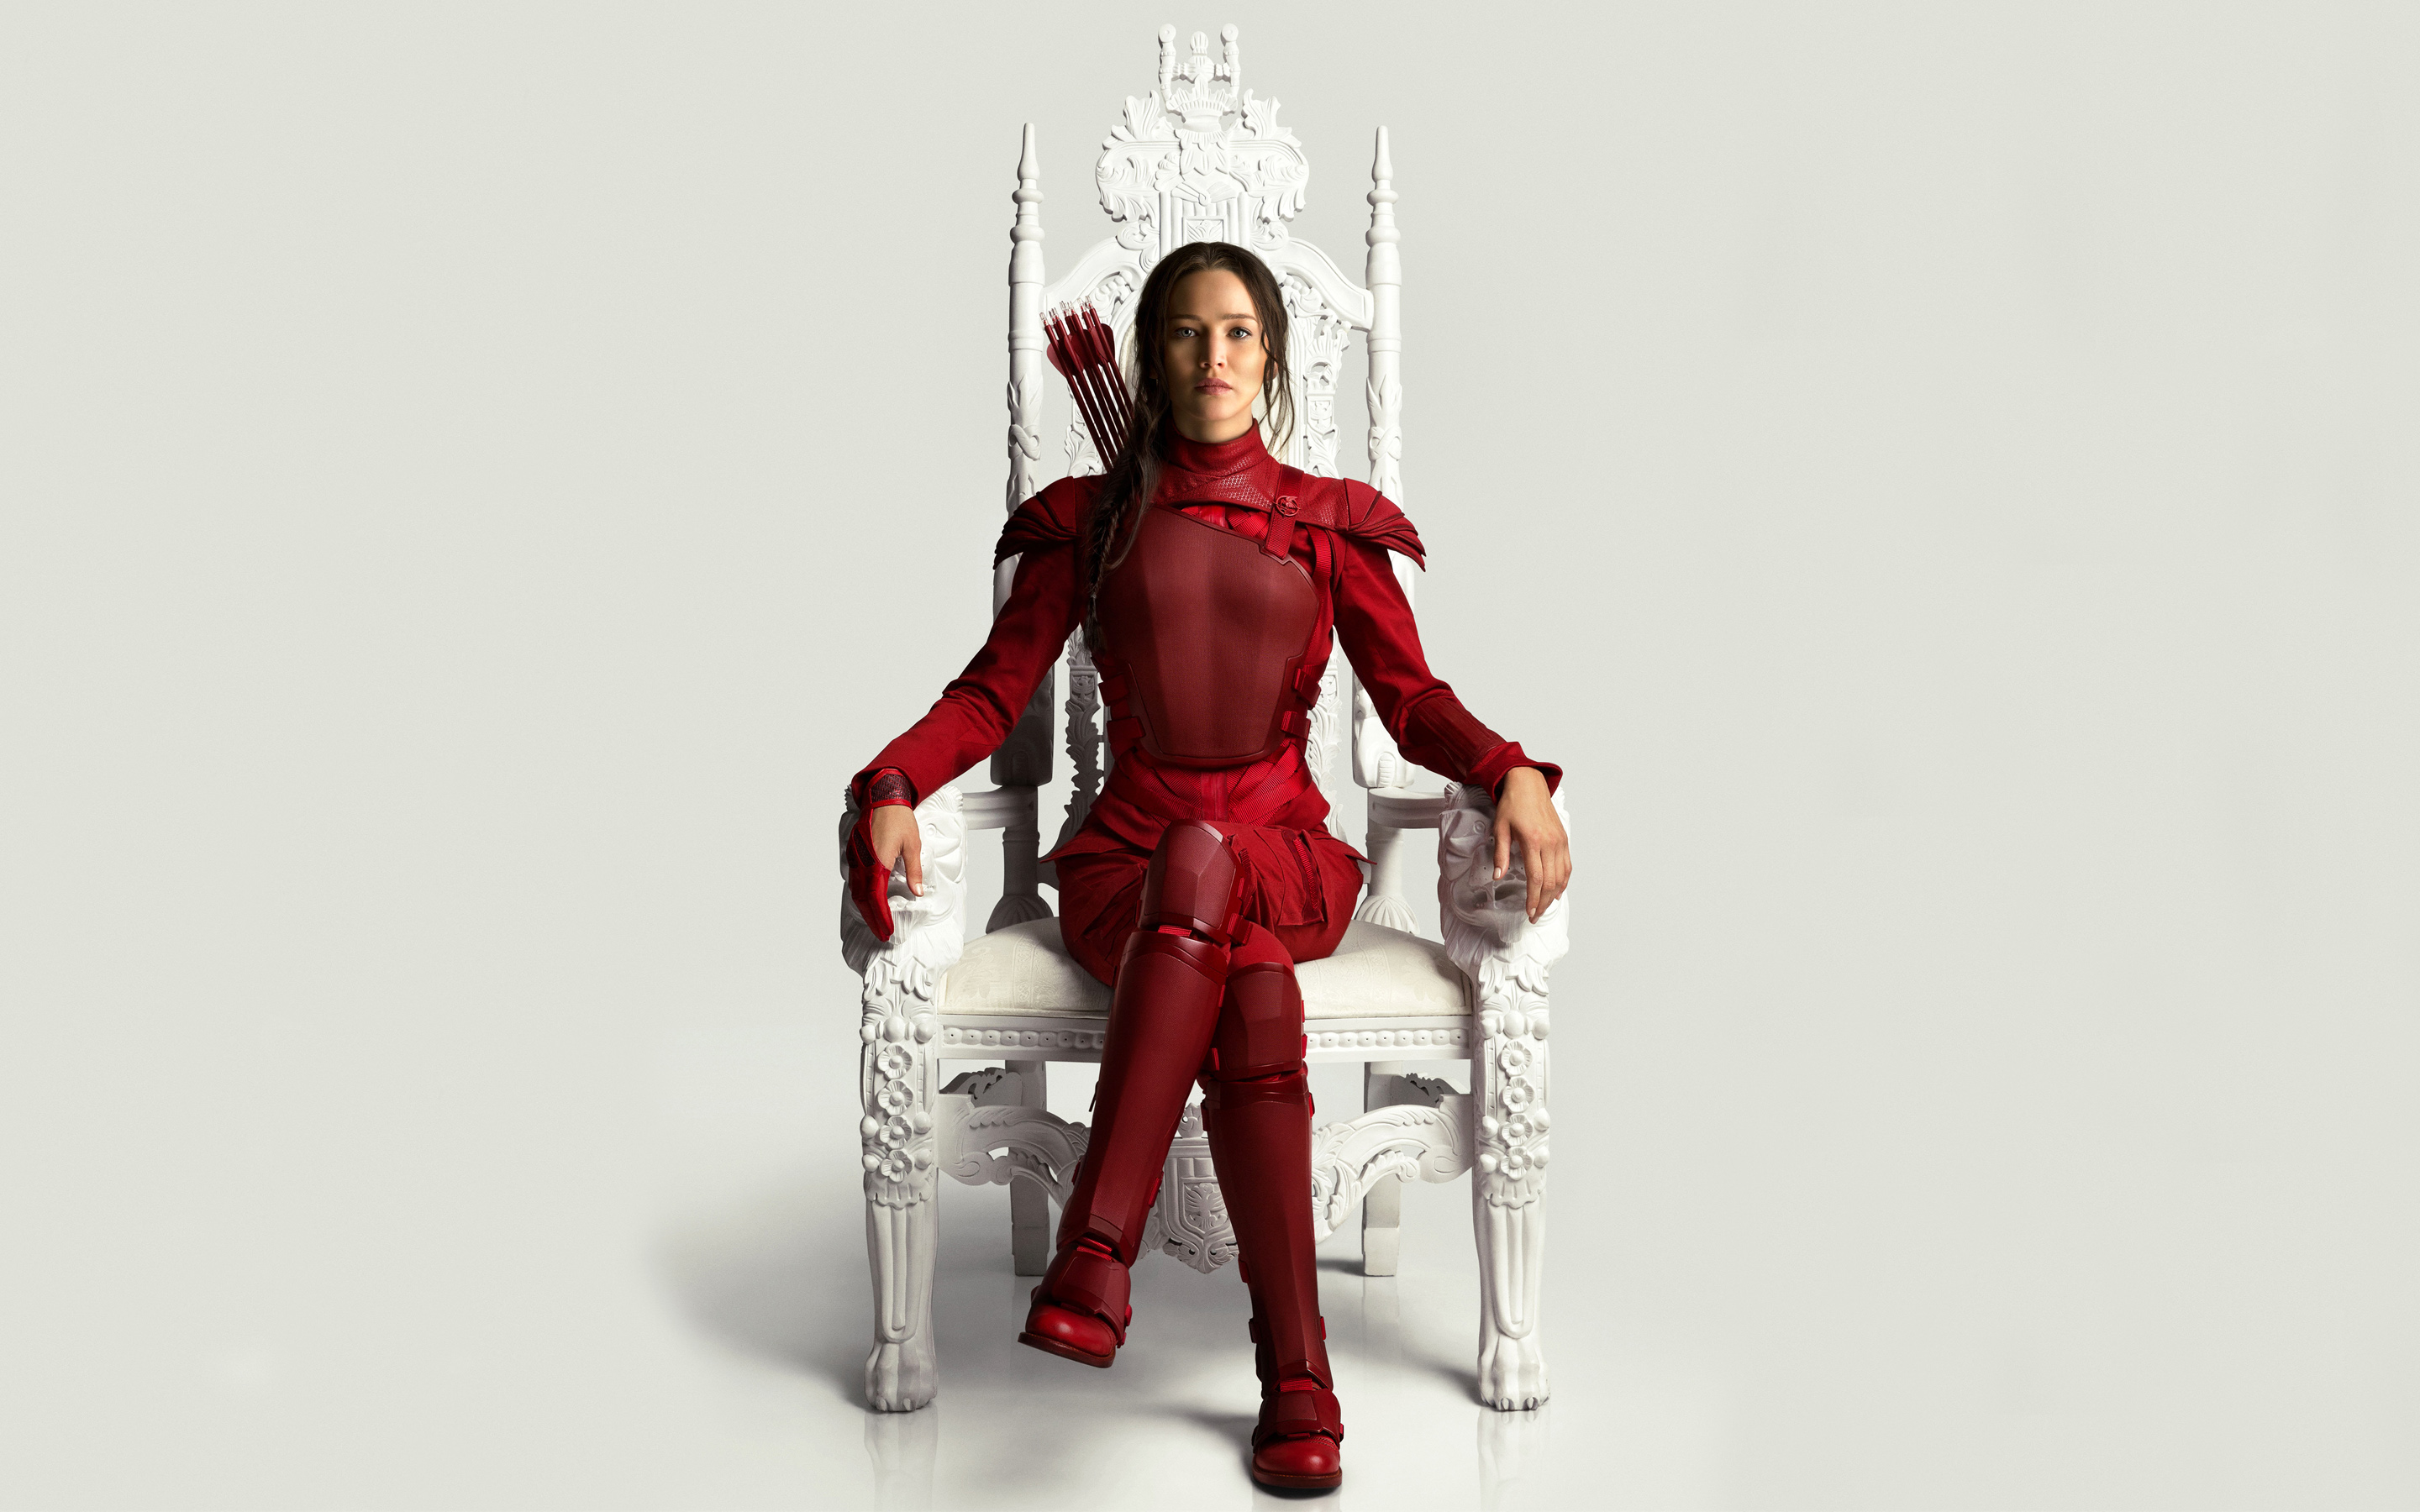 The Hunger Games Mockingjay Part 2 Wallpapers HD Wallpapers 2880x1800